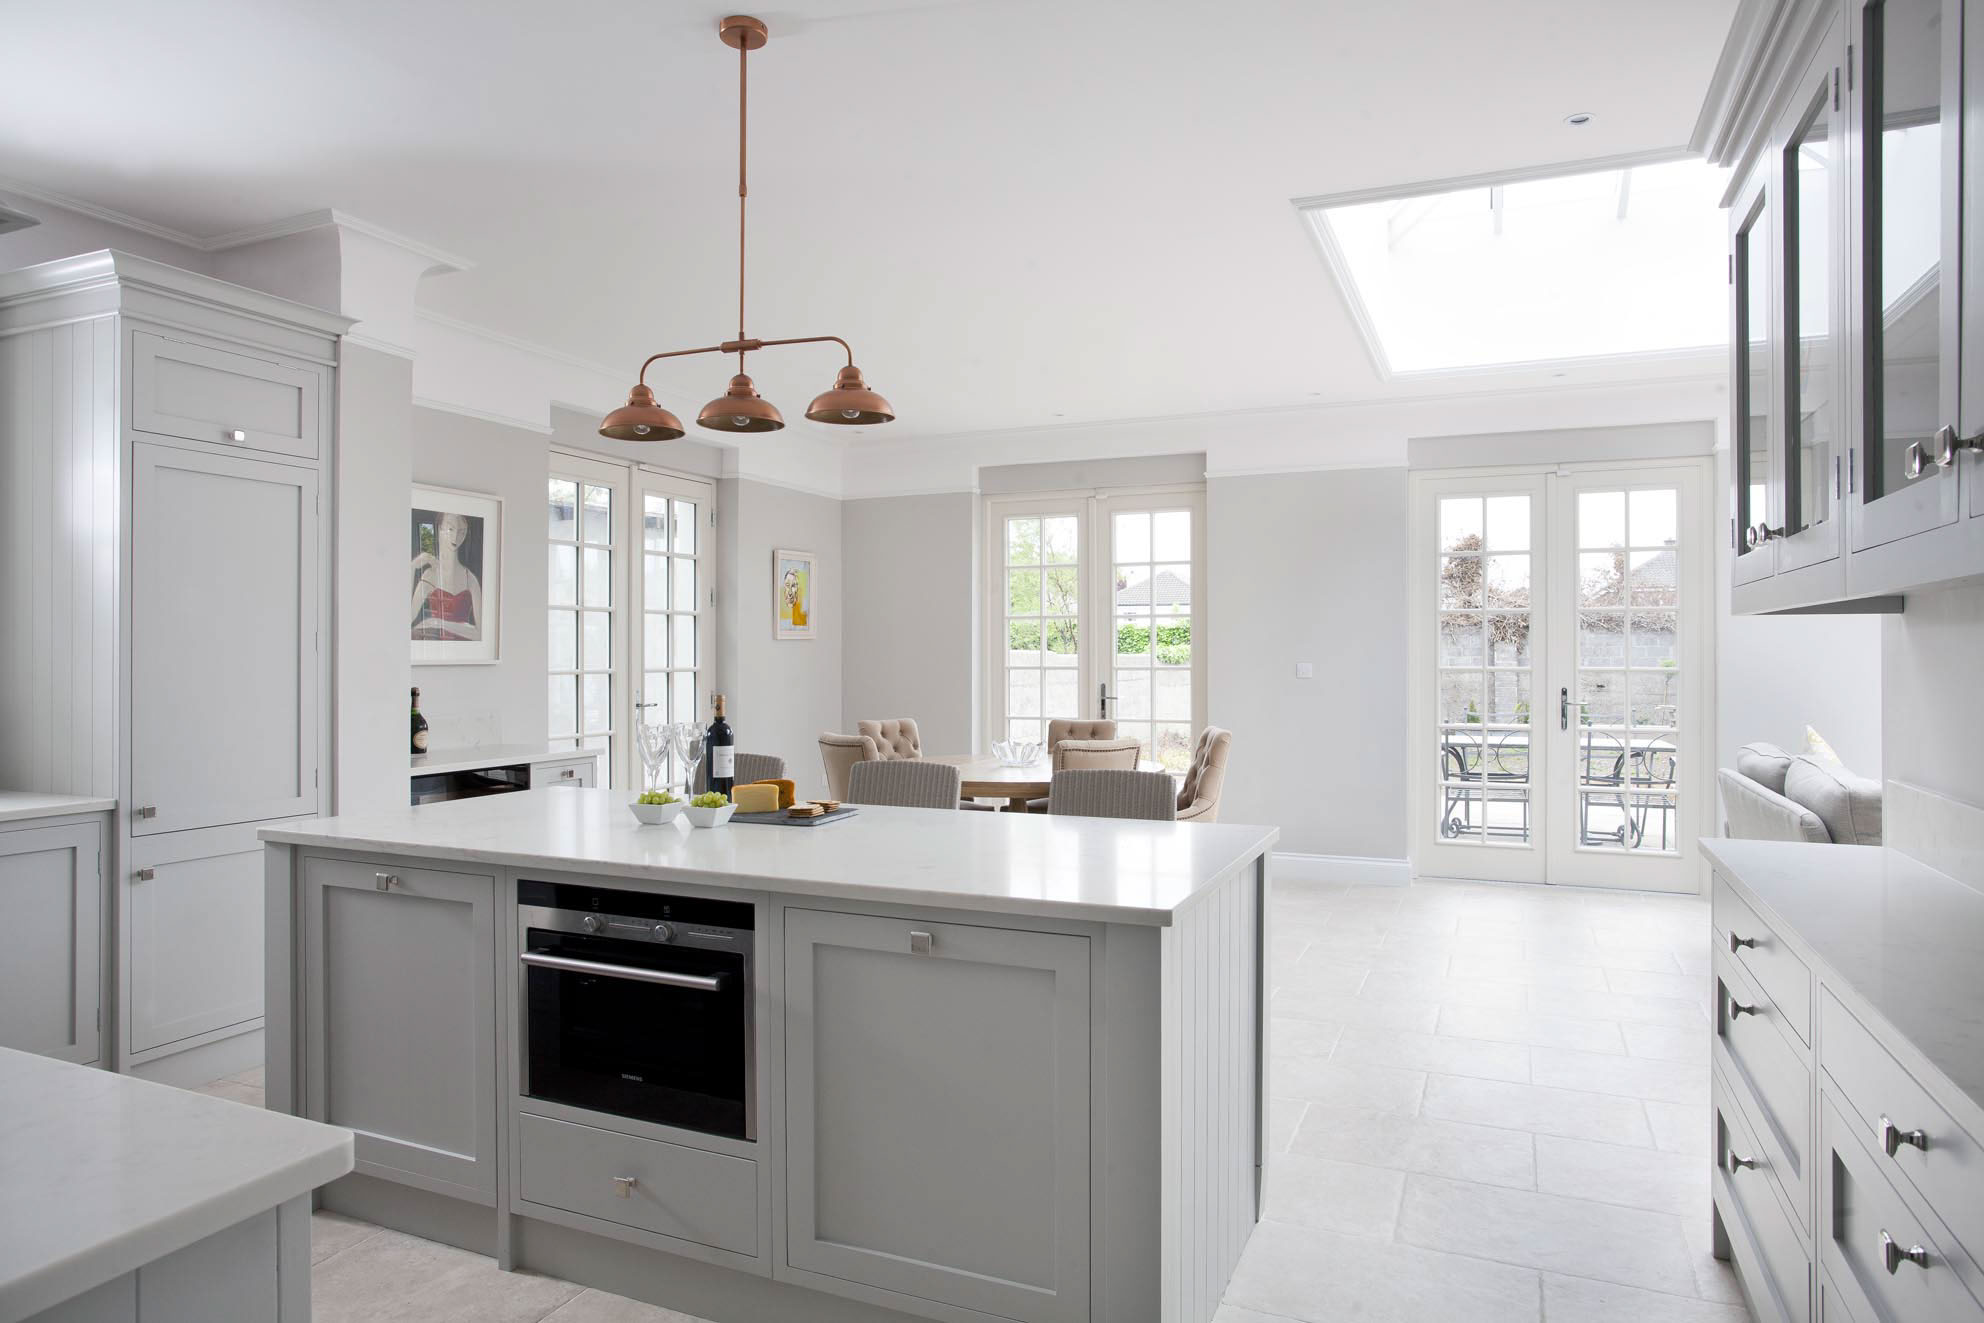 Handmade kitchens ireland luxury handpainted kitchens in for Apartment kitchen design dublin